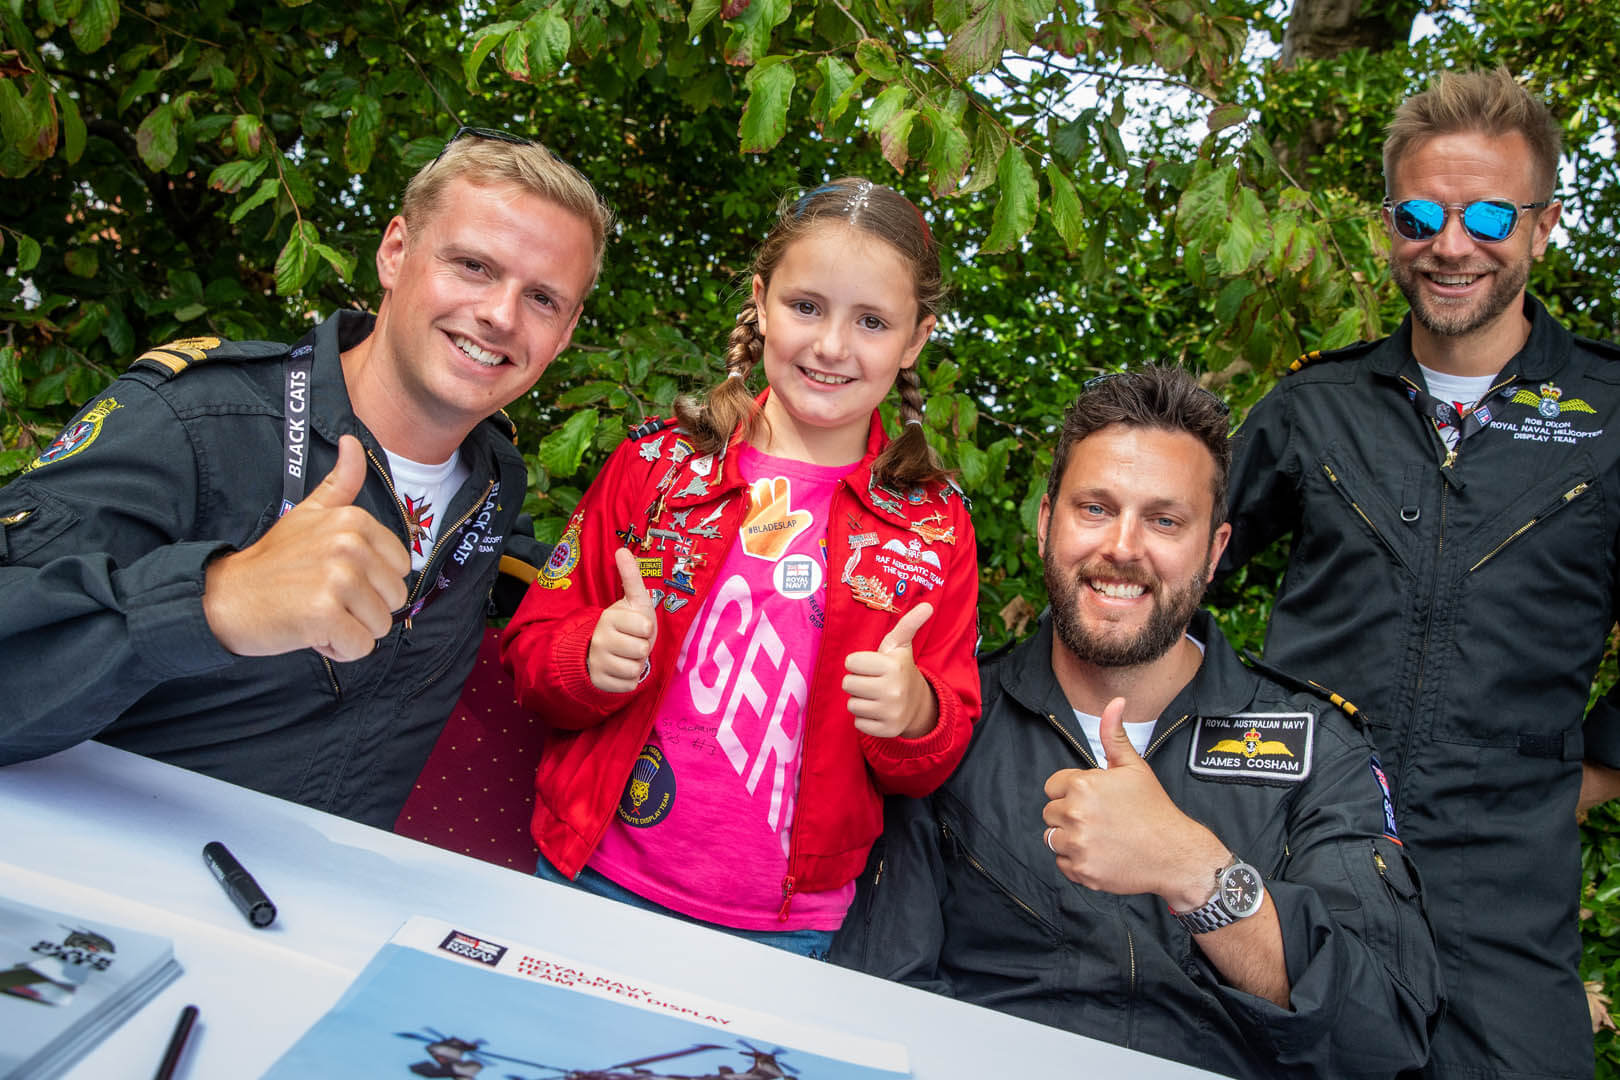 Thumbs up from Royal Air Force pilots and a young fan at the meet and greet event